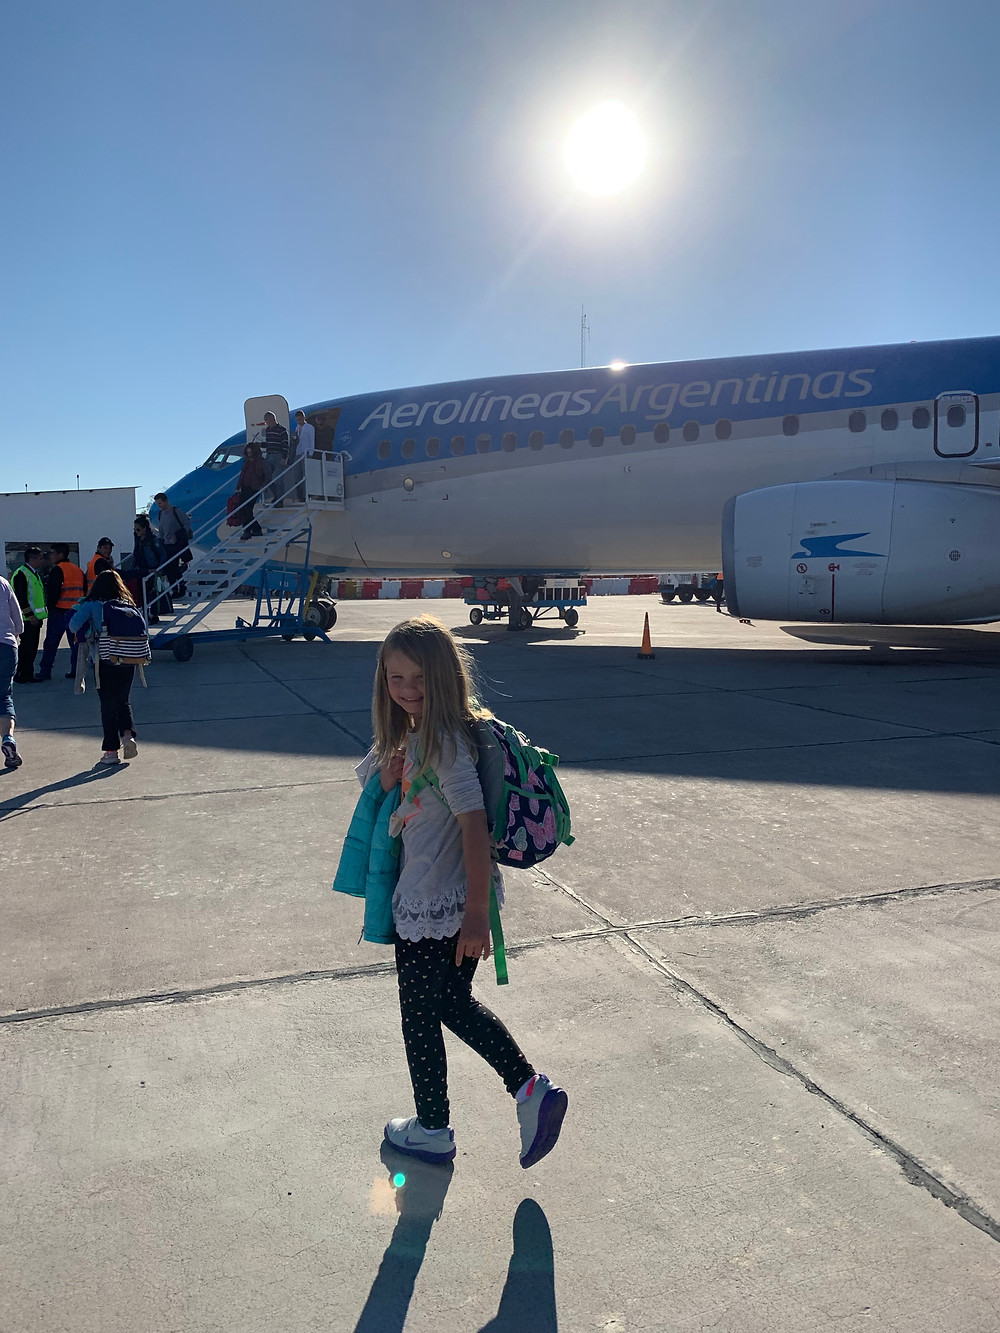 Boarding a plane in Argentina